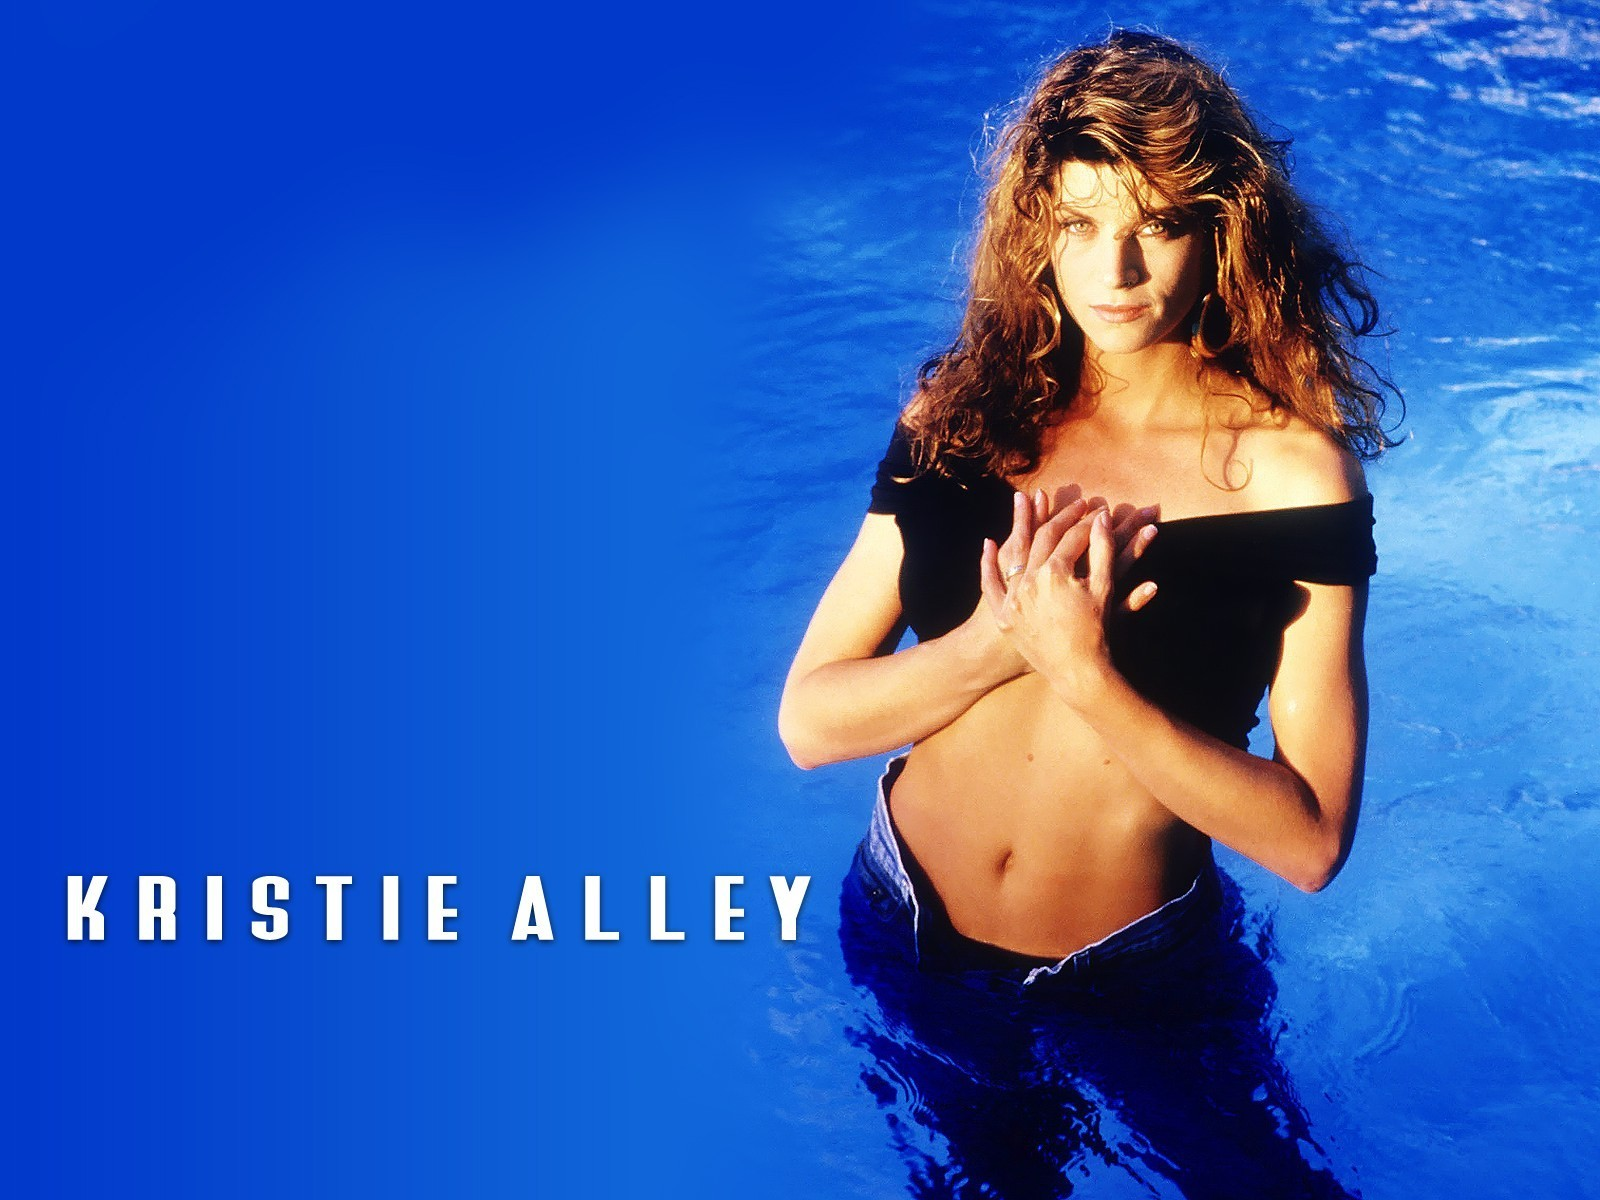 kirstie alley bikini Pictures, Images & Photos